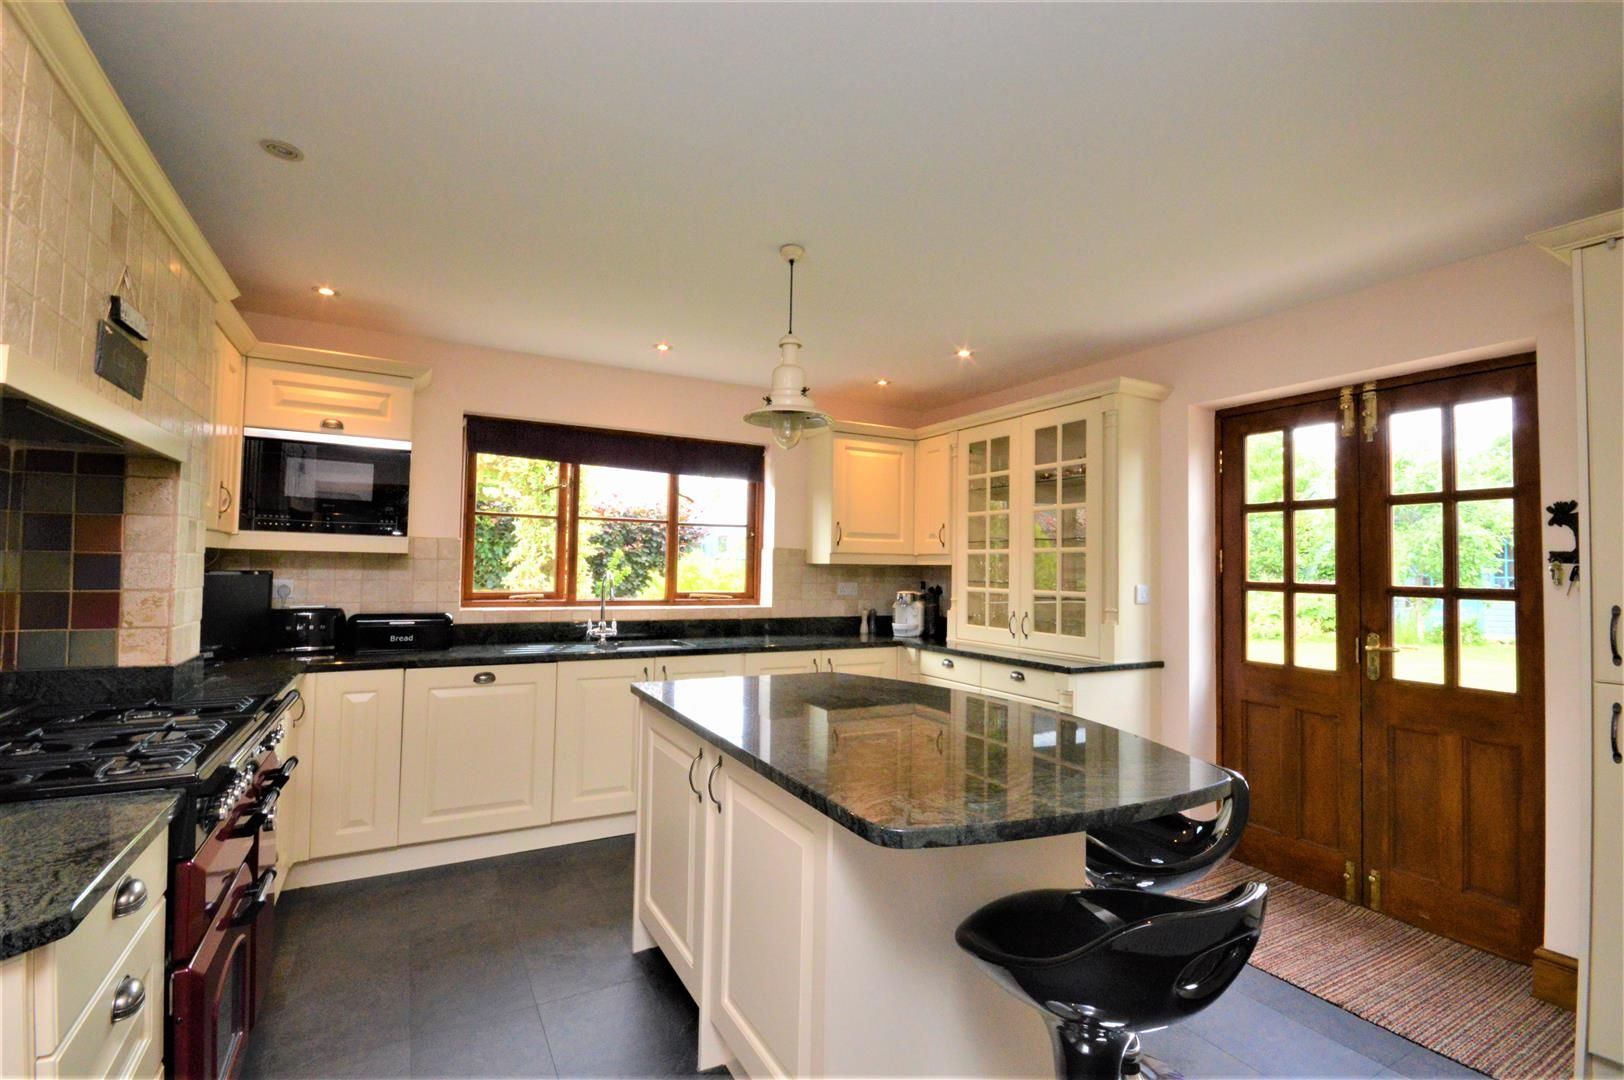 4 bed detached for sale in Eardisley  - Property Image 6